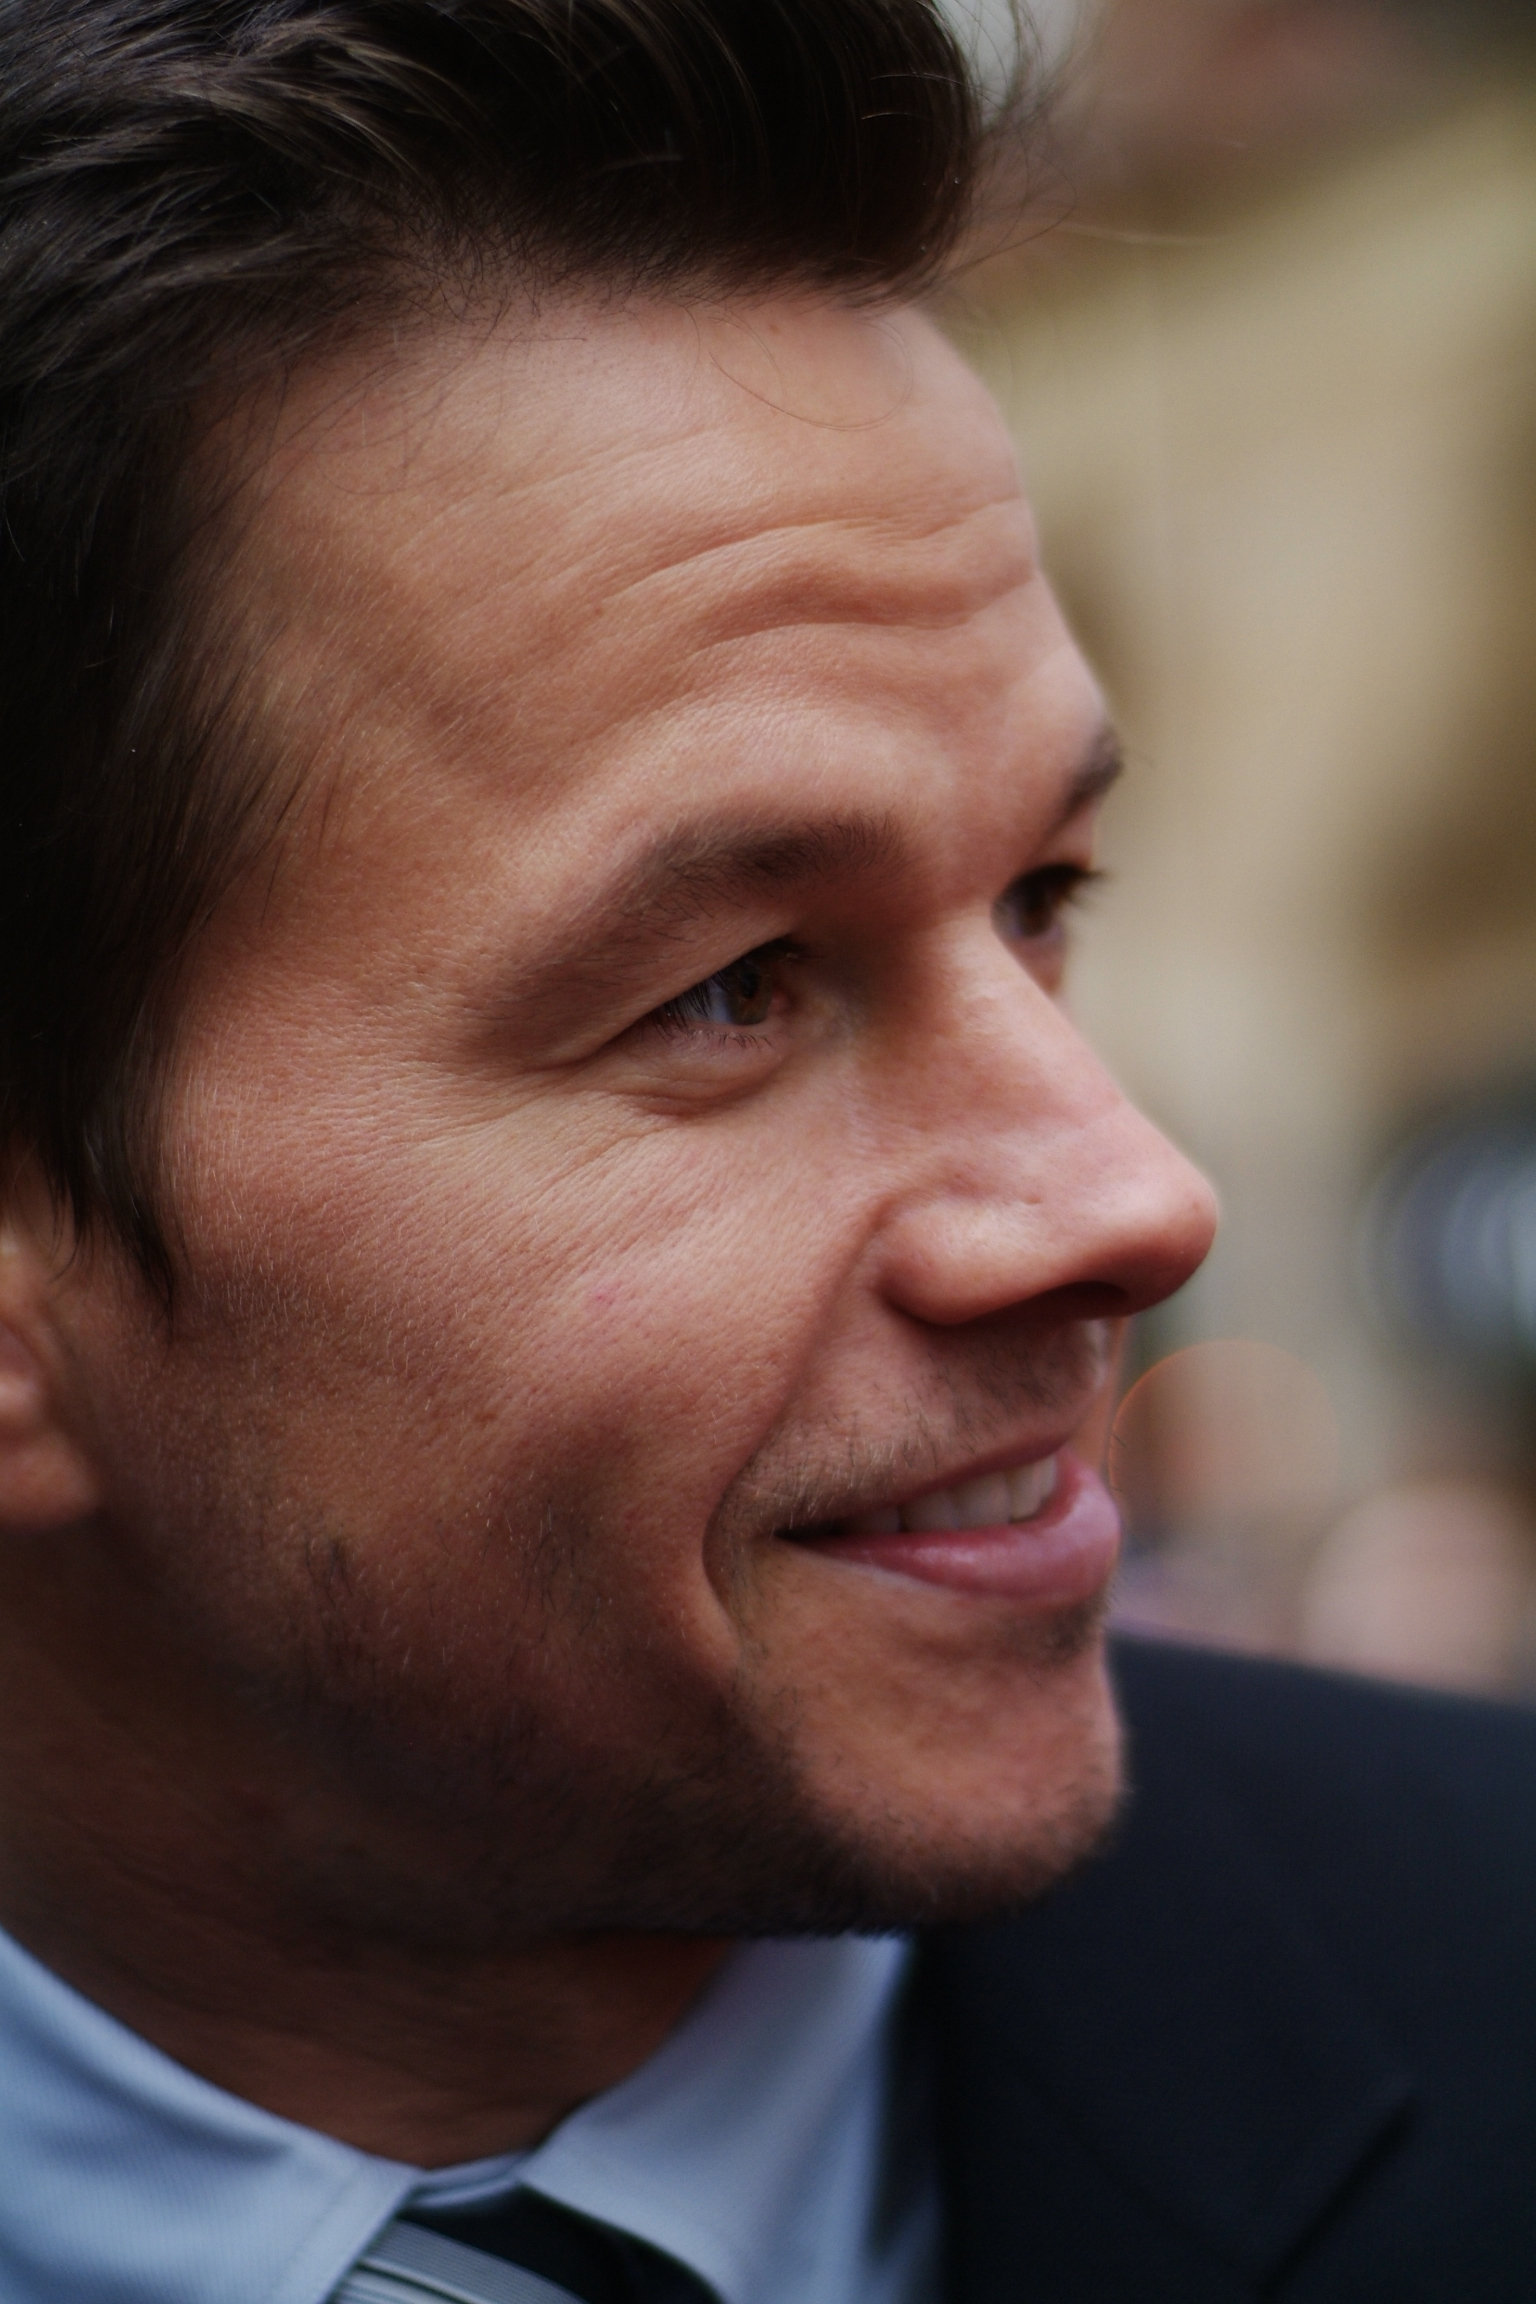 File:Mark Wahlberg 2007.jpg - Wikimedia Commons